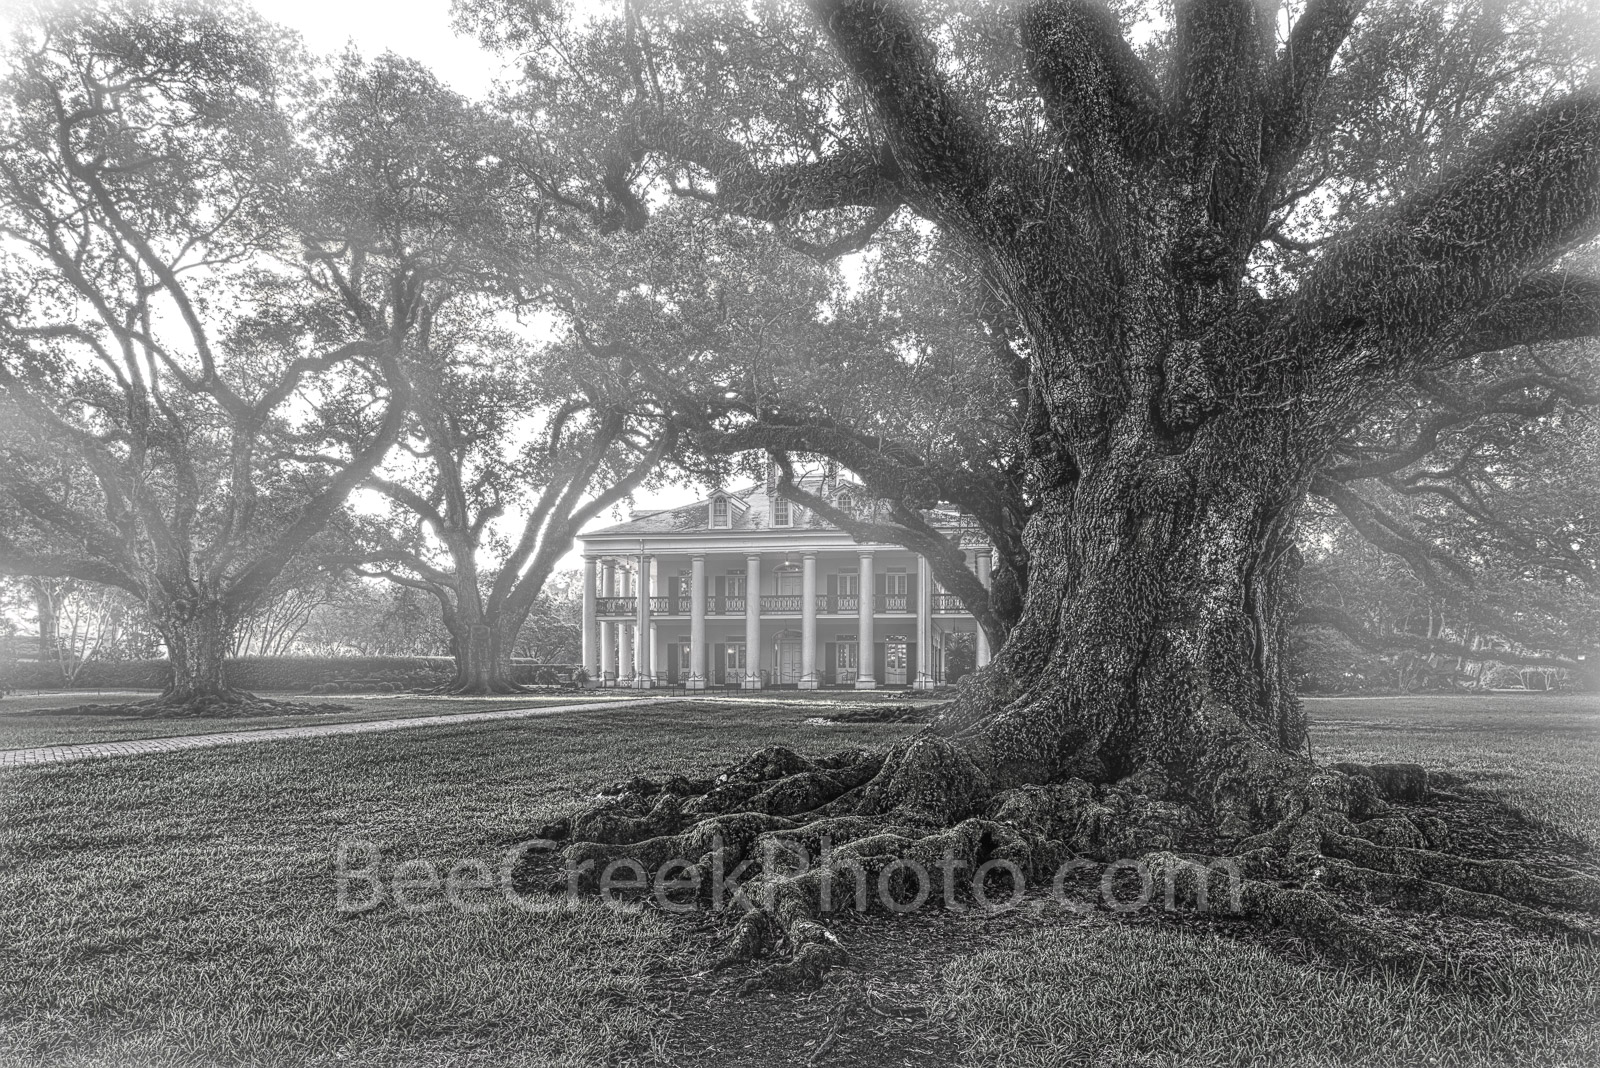 Oak Alley Plantation, black and white, bw,  misty, live oak trees, plantation oaks, slavery, deep south, southern, oak valley, seven oaks, mansion, big house, movies, Mississipp river, Vacherie, St Ja, photo